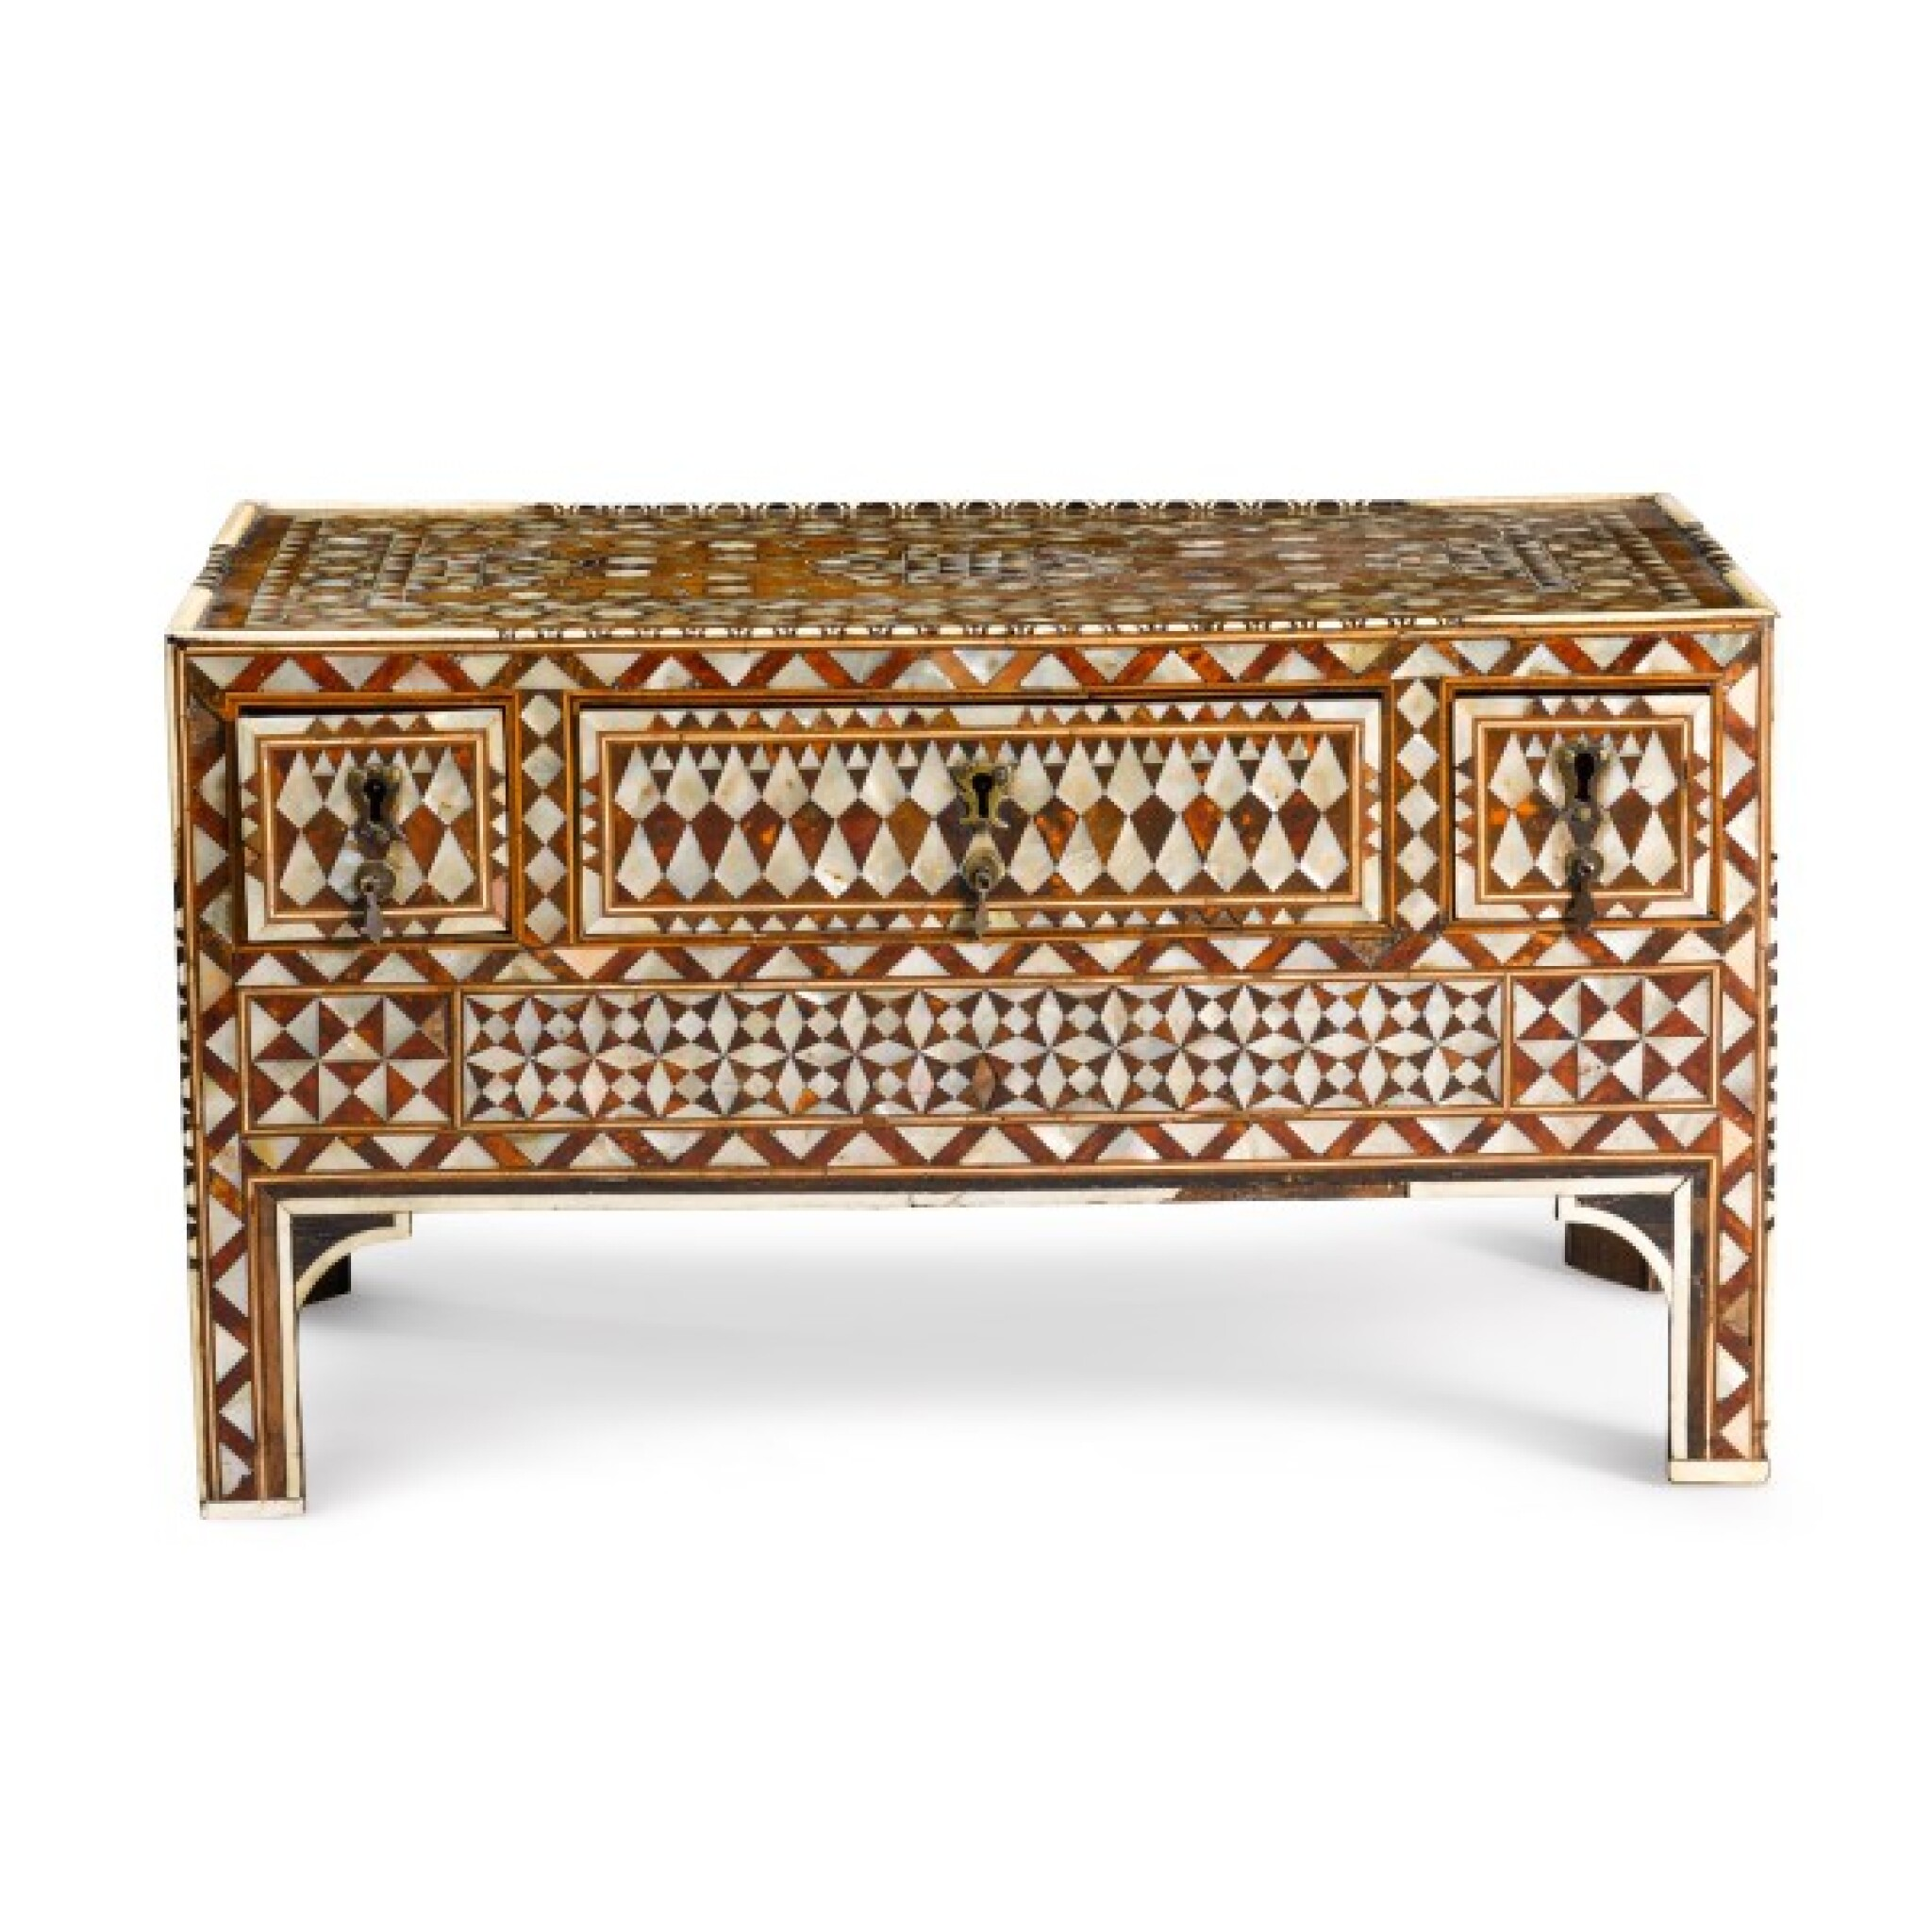 View full screen - View 1 of Lot 105. Turkey, Ottoman, 18th/19th century | Calligrapher's Chest.